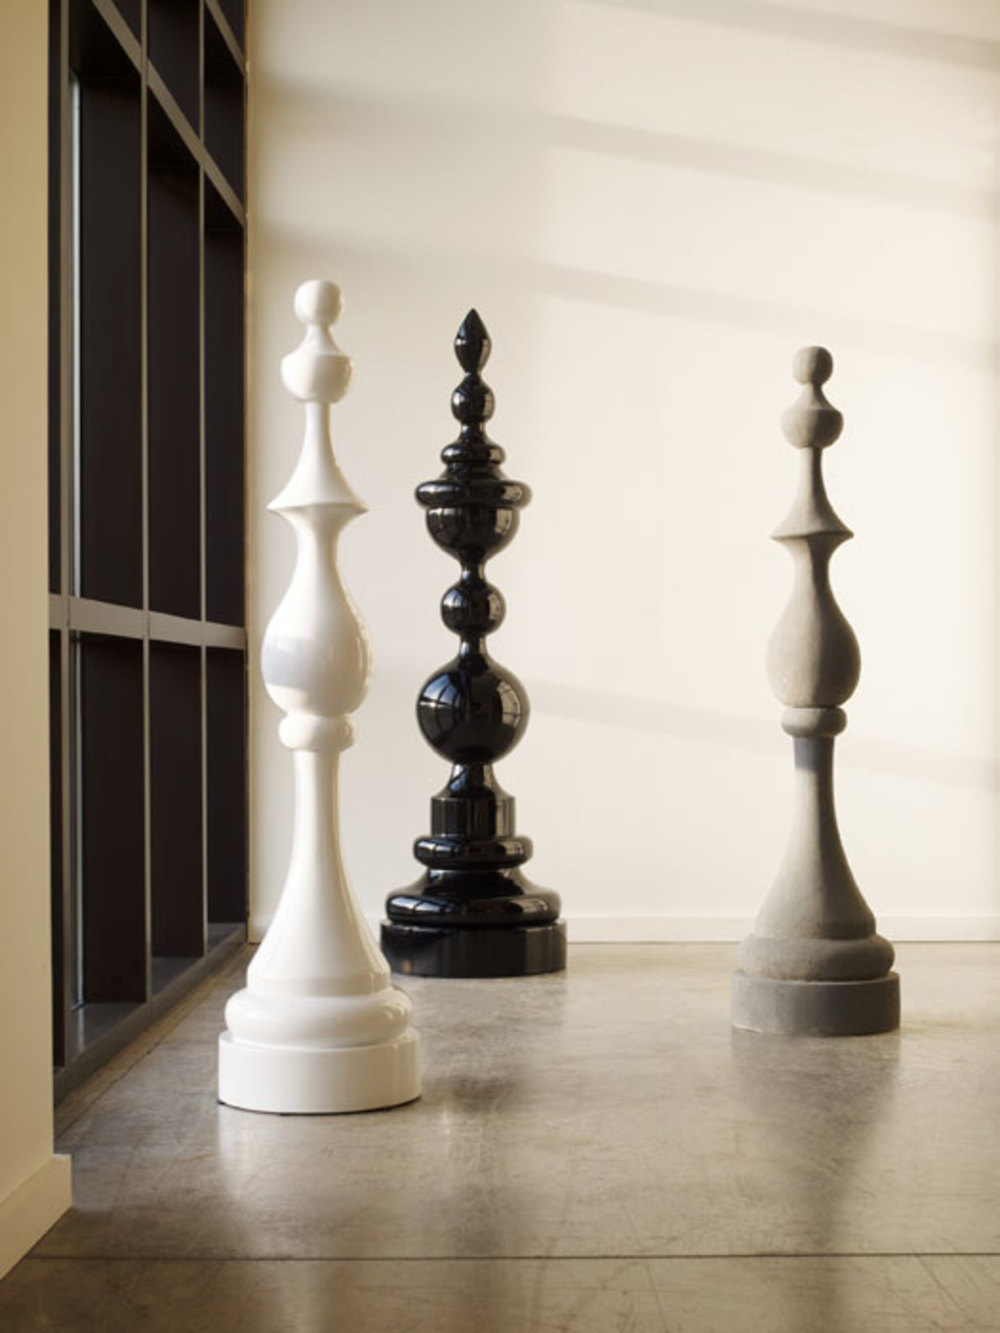 Phillips Collection - Check Mate Sculpture